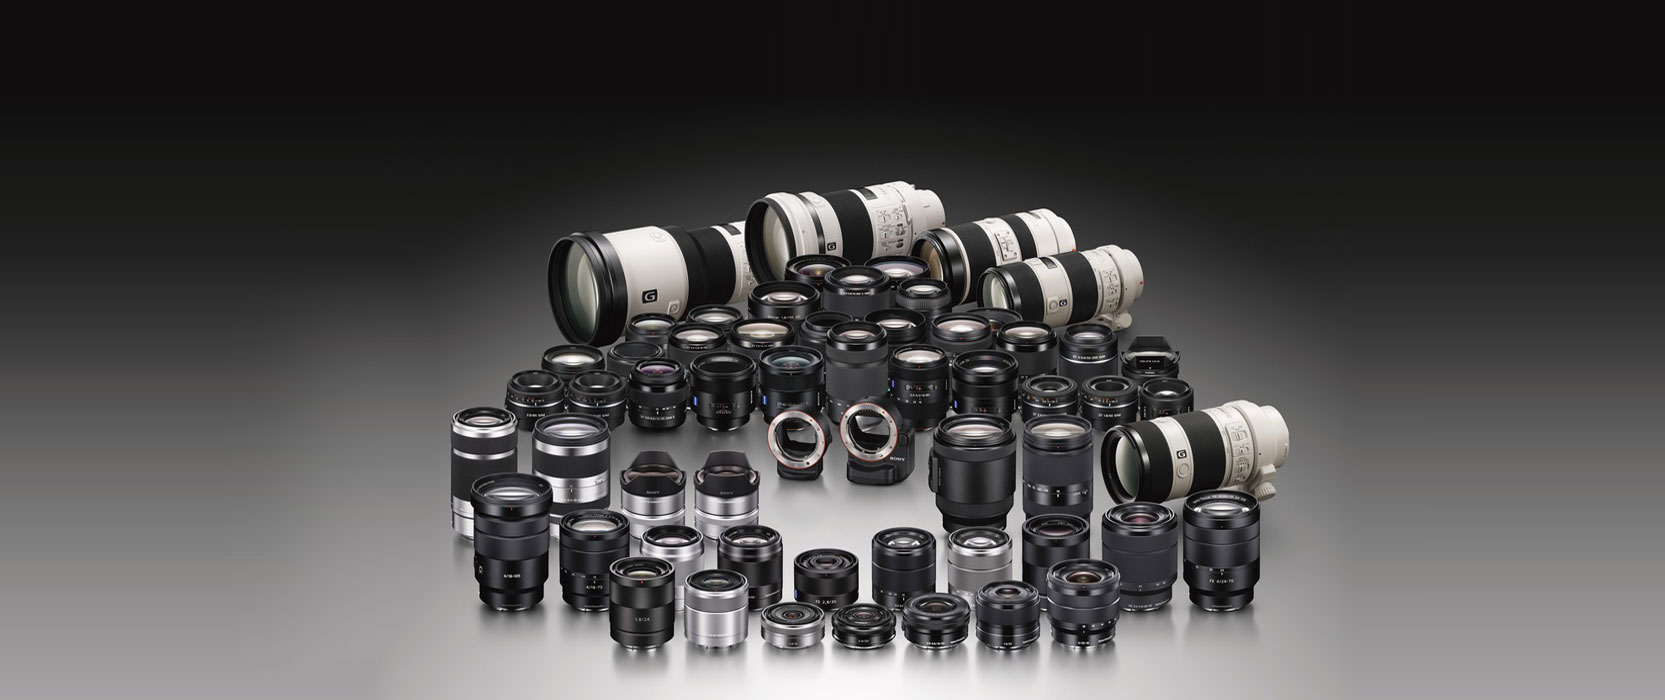 besides native fe lenses e mount cameras are compatible with a wide array of dslr lenses via the use of adapters but those are outside the scope of this